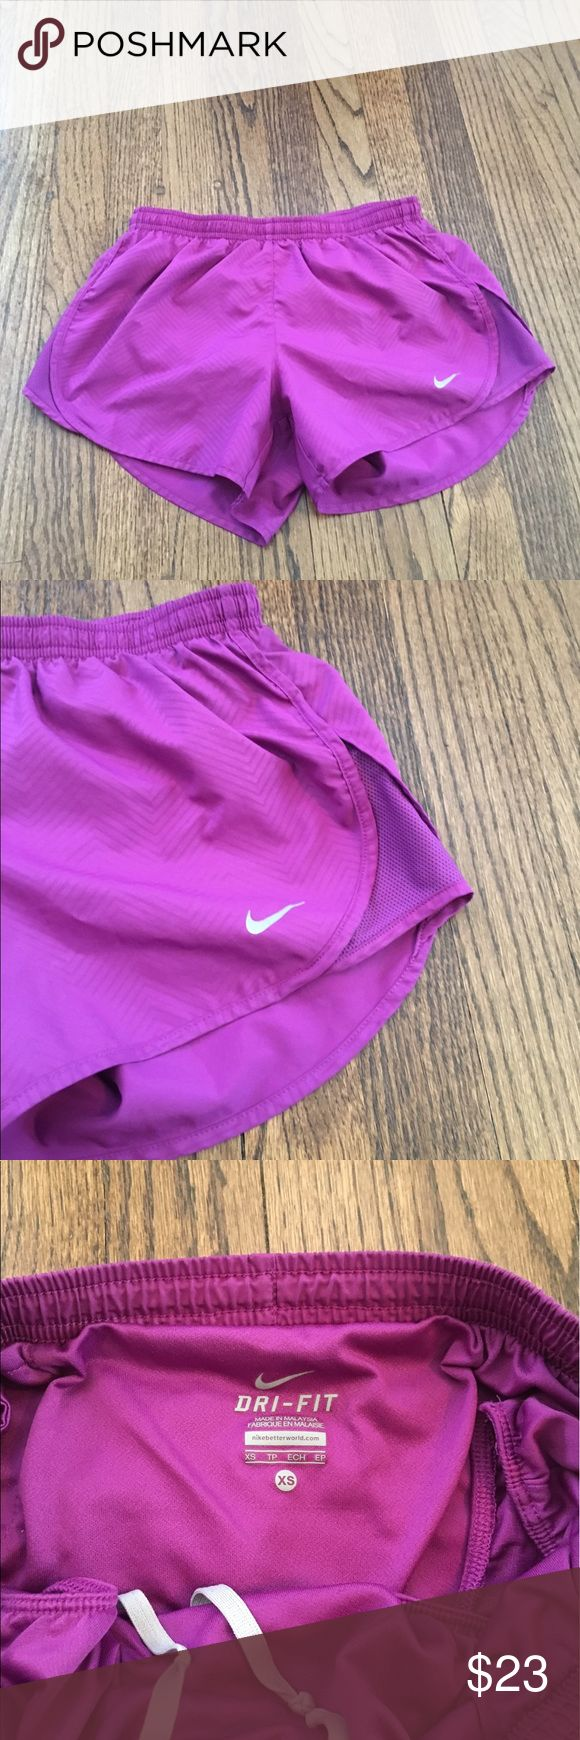 Nike Dri Fit shorts Women's purple Nike Dri Fit shorts.  Very good condition - worn and washed a couple times.  Has drawstring on inside and a zipper pocket on back for your key.  Comes from a smoke free home! Nike Shorts